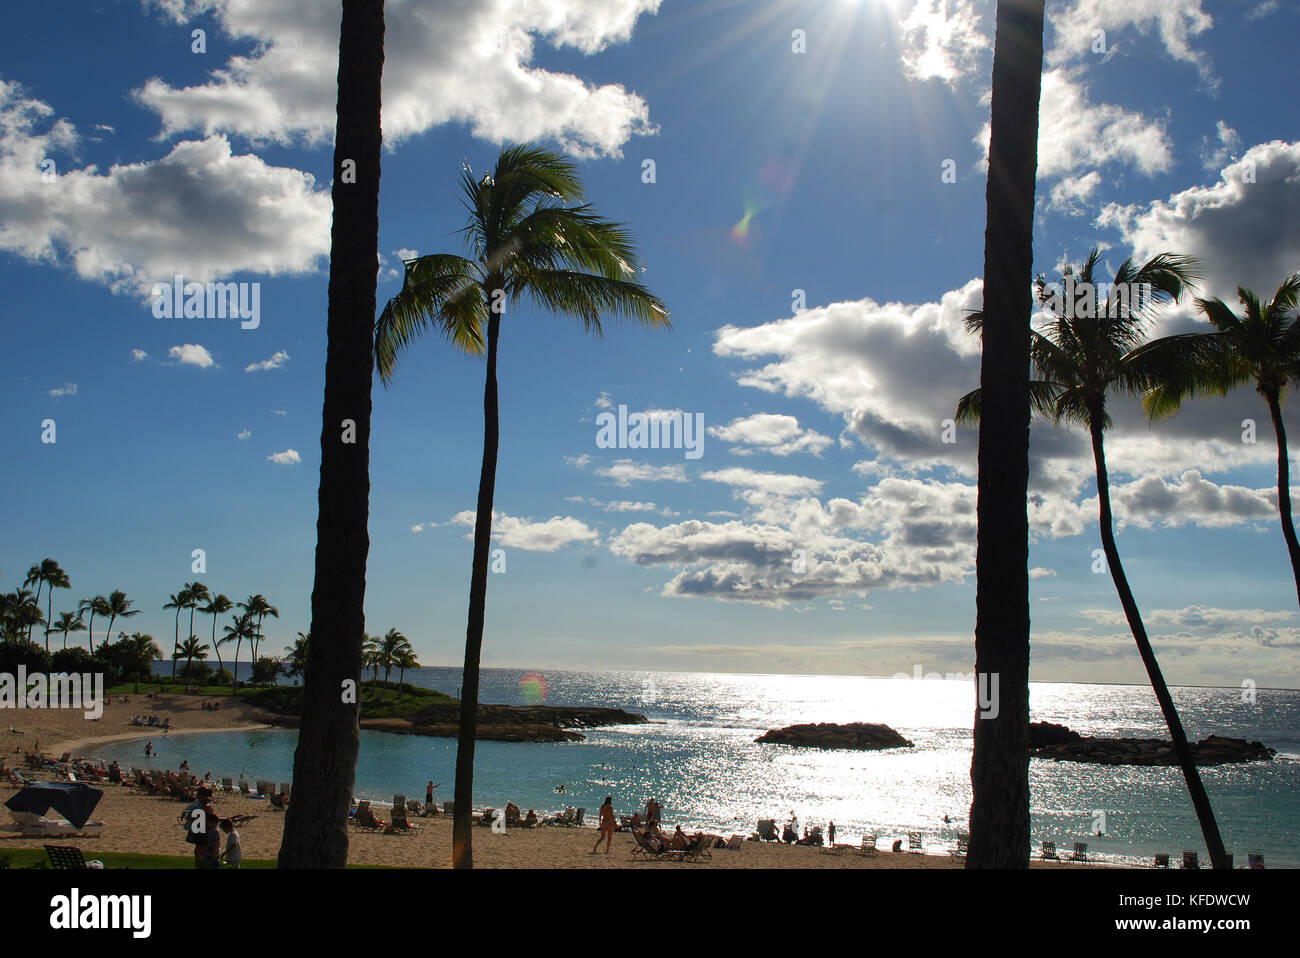 Sunshine glistens on the water of Ko Olina Resort on the island of Oahu, Hawaii - Stock Image